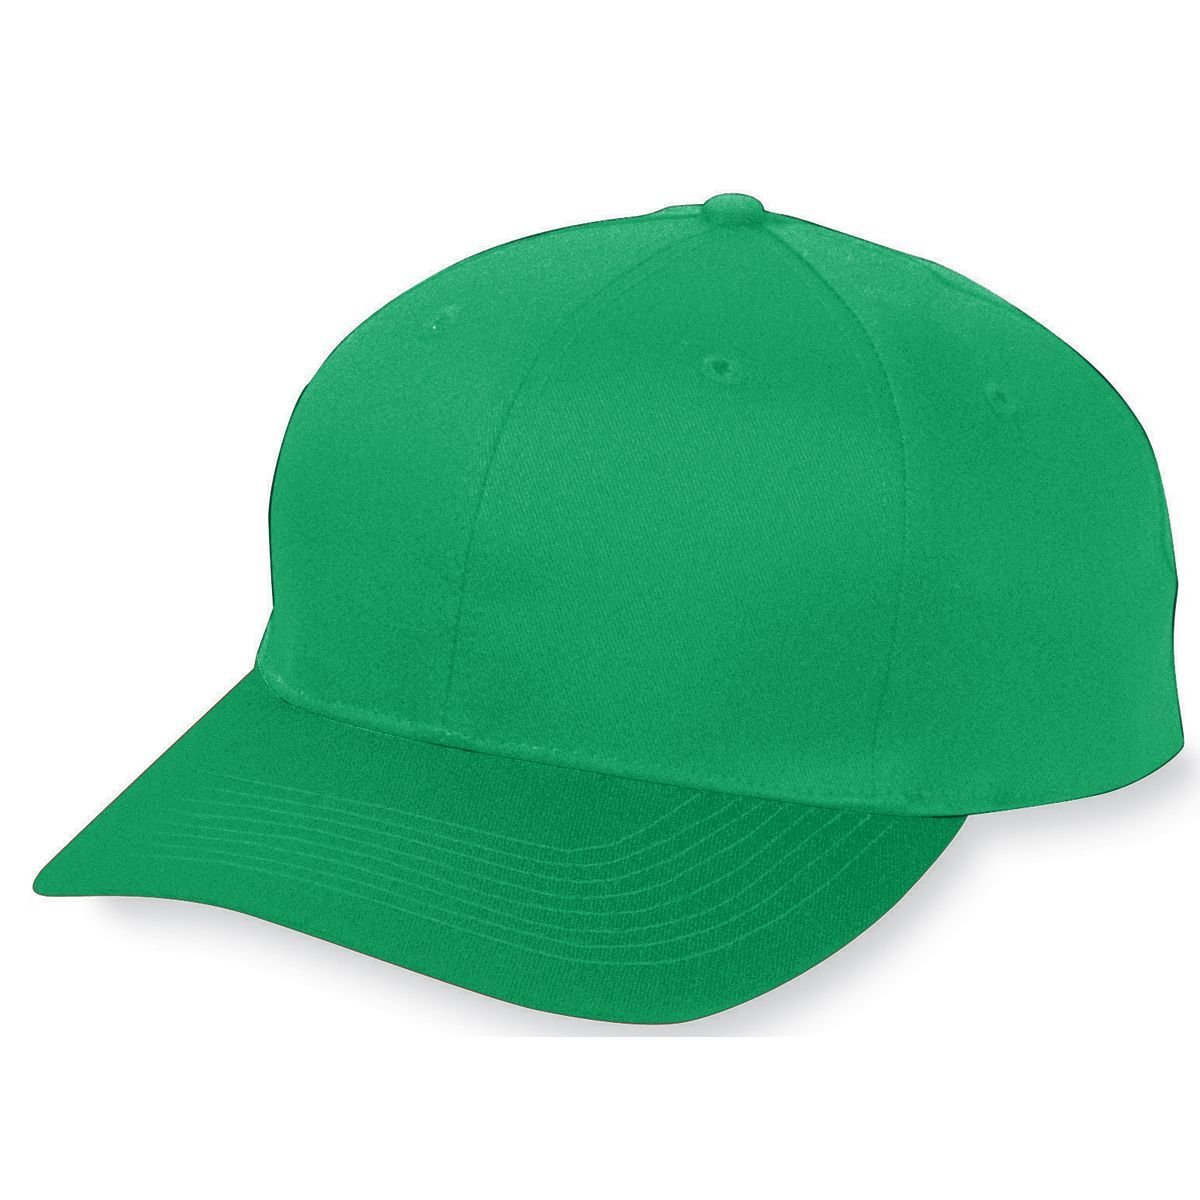 Youth Six-Panel Cotton Twill Low-Profile Cap - KELLY